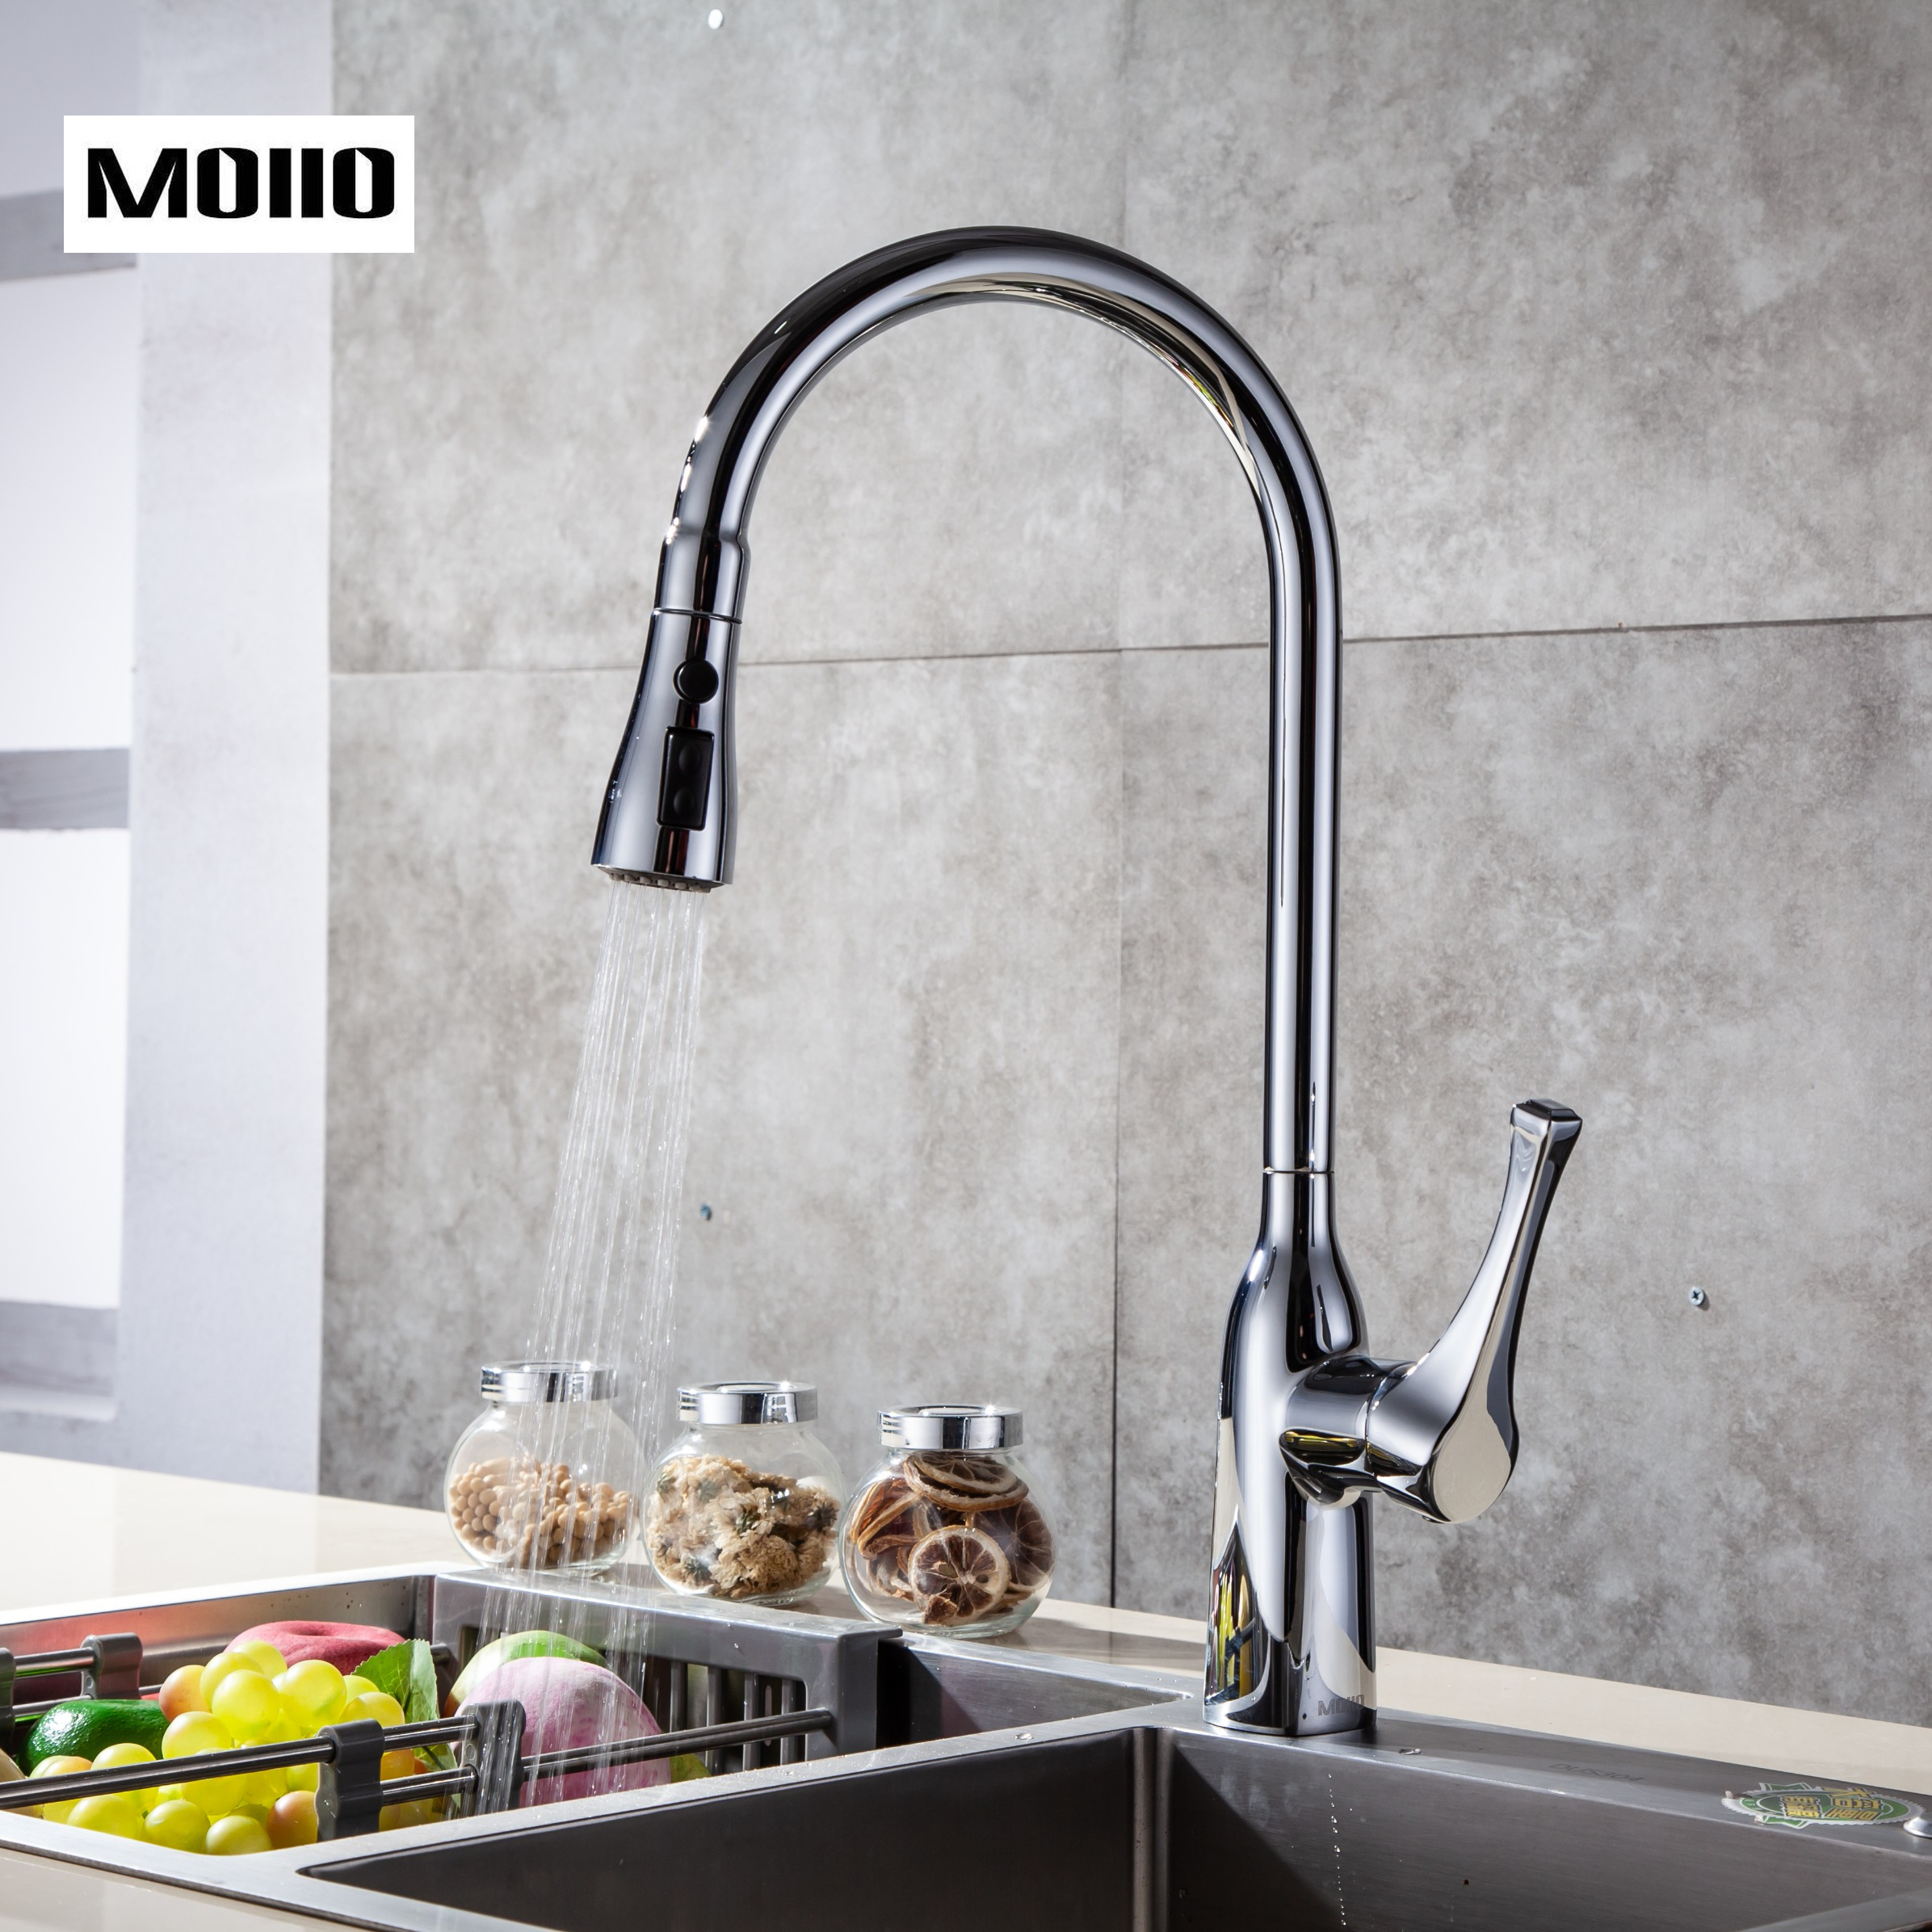 Moiio Modern Style Solid Brass Single Lever Pause Botton Pull Down Sprayer Brushed Nickel Kitchen Faucet Deck Mounted Faucet